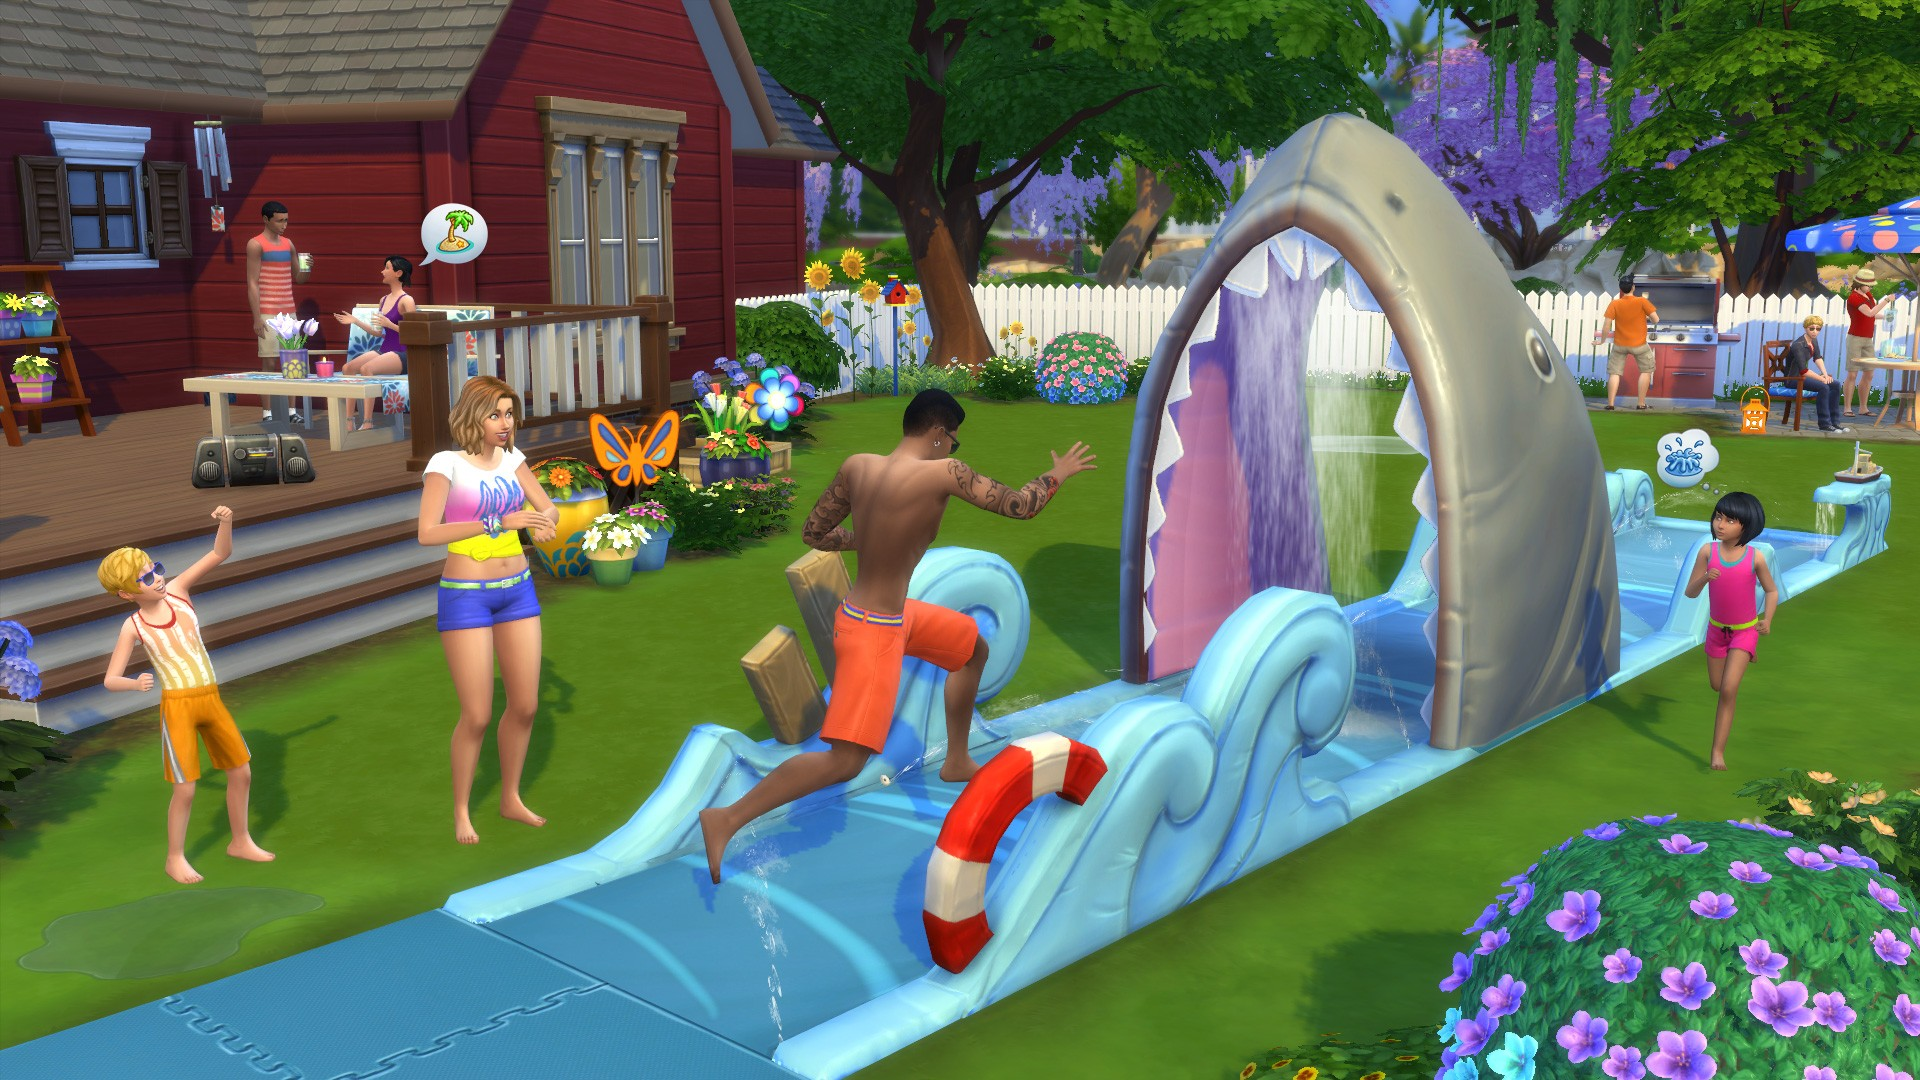 It looks like The Sims 4 is coming to Xbox screenshot